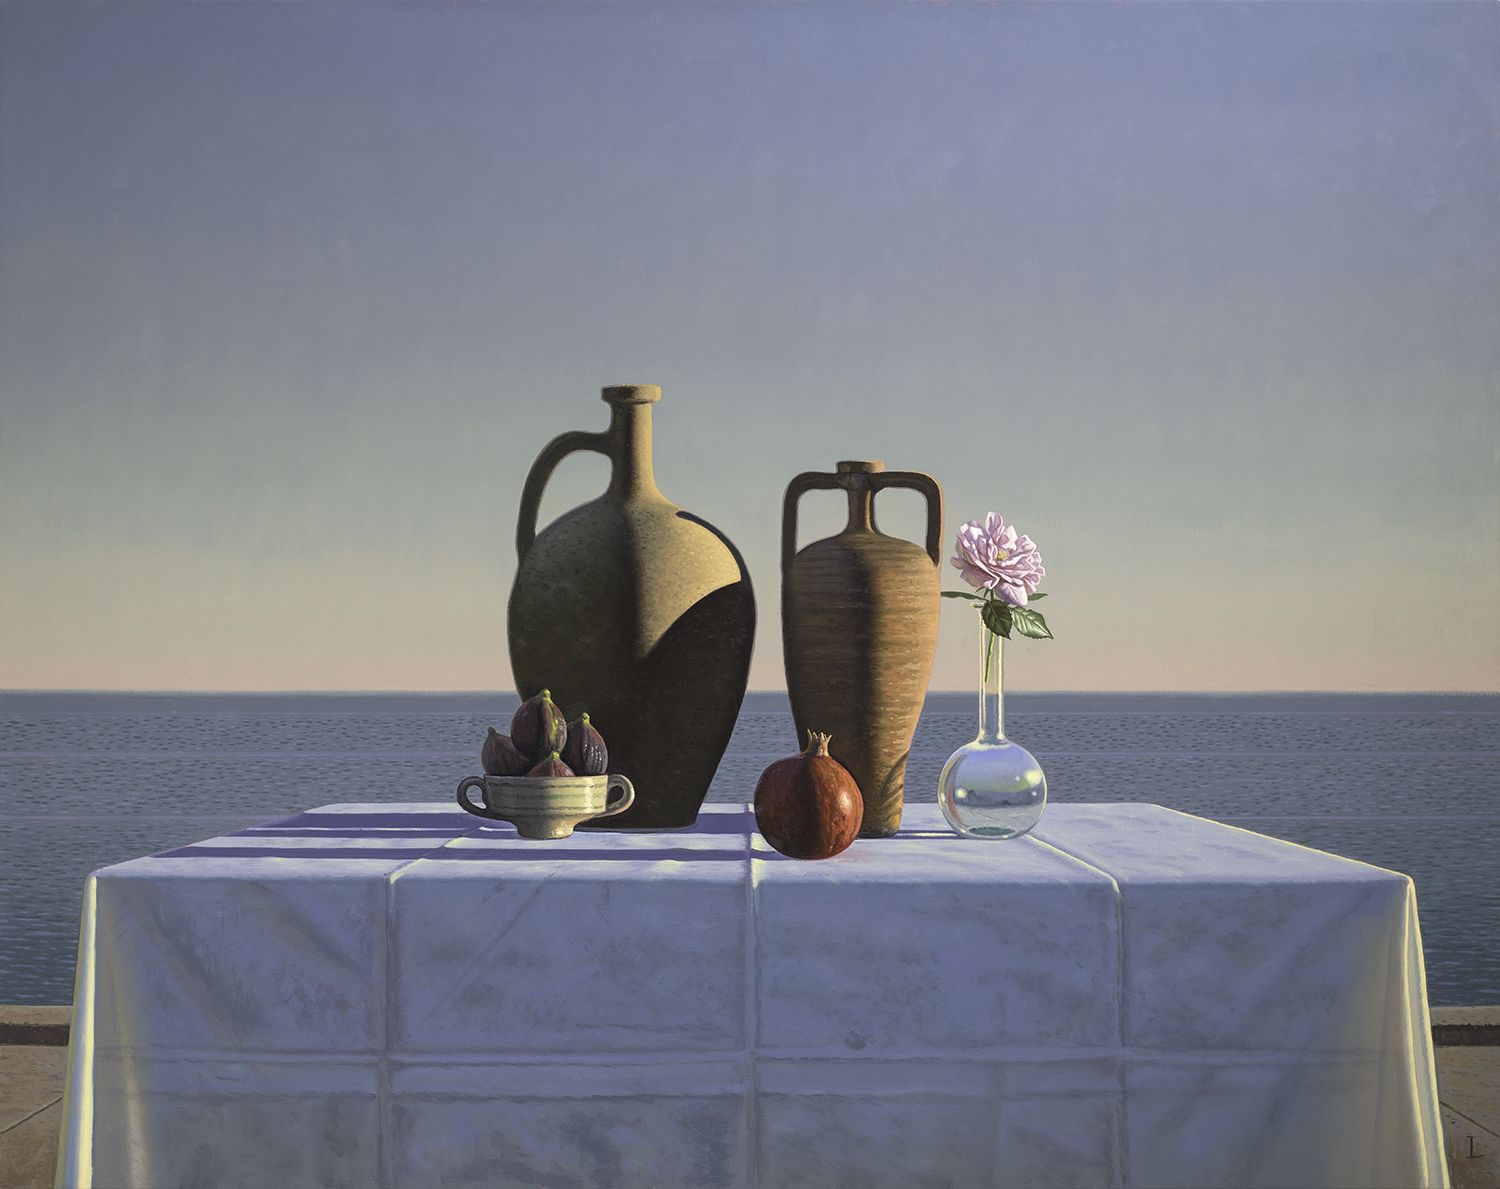 David Ligare (b. 1945), Still Life with Figs, Pomegranate and Rose, 2018